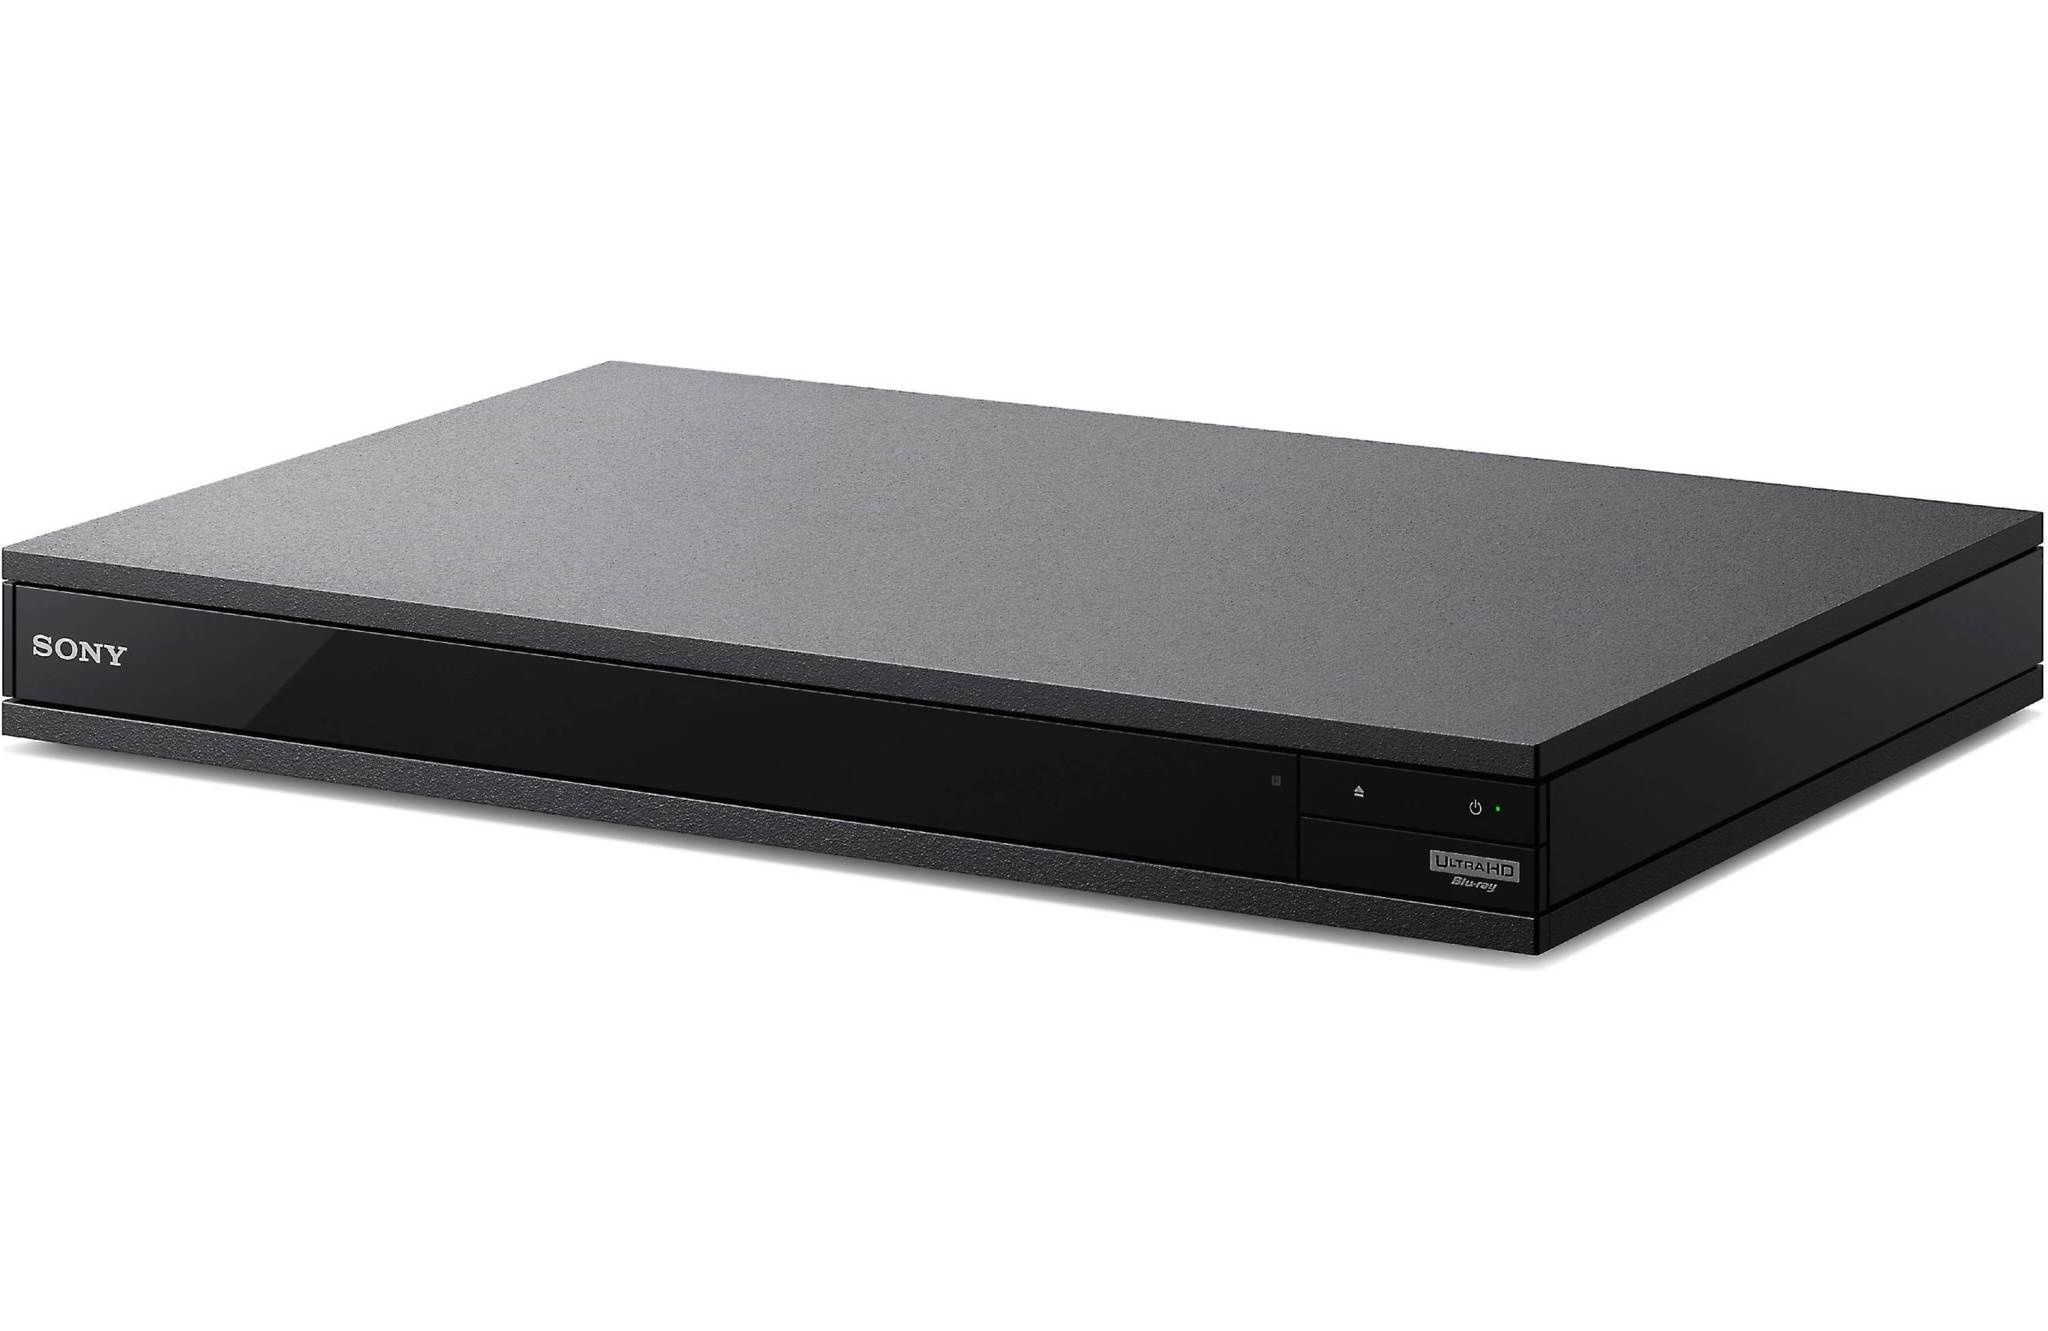 Sony Sony UBP-X800M2 4K Blu-ray Player